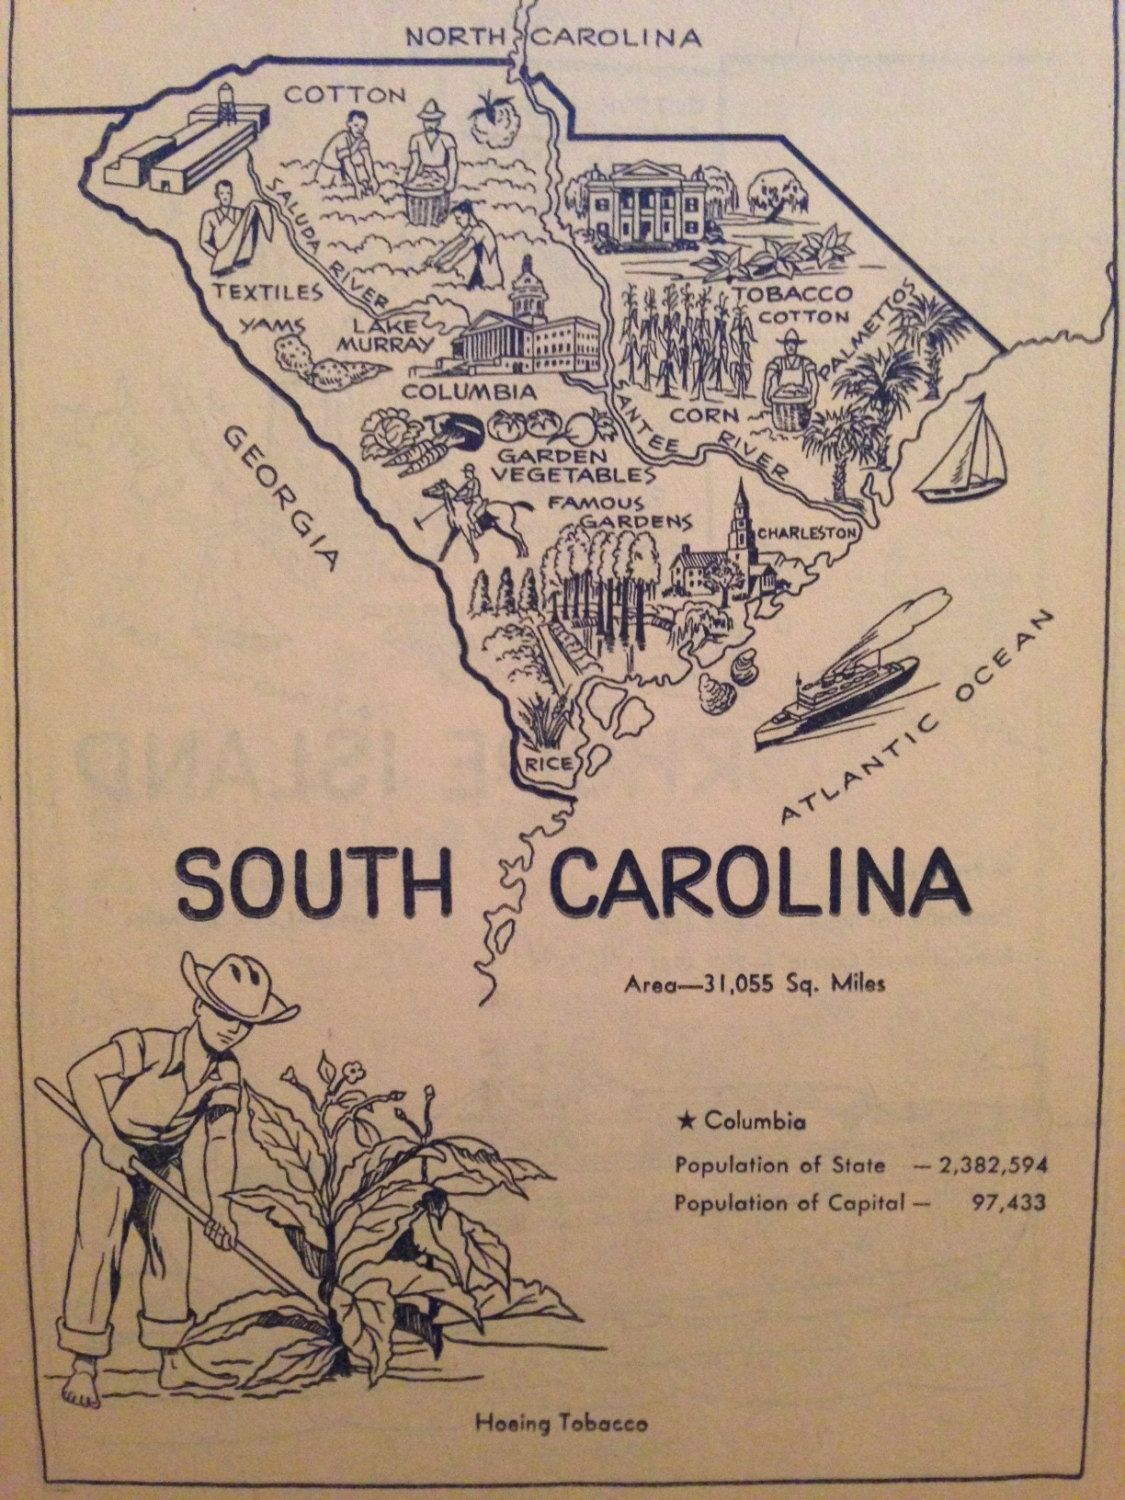 south carolina map wall art vintage map of sc artwork state 1c2058ba6e8cfe42e742d190ae77e5ca 418131146635526149